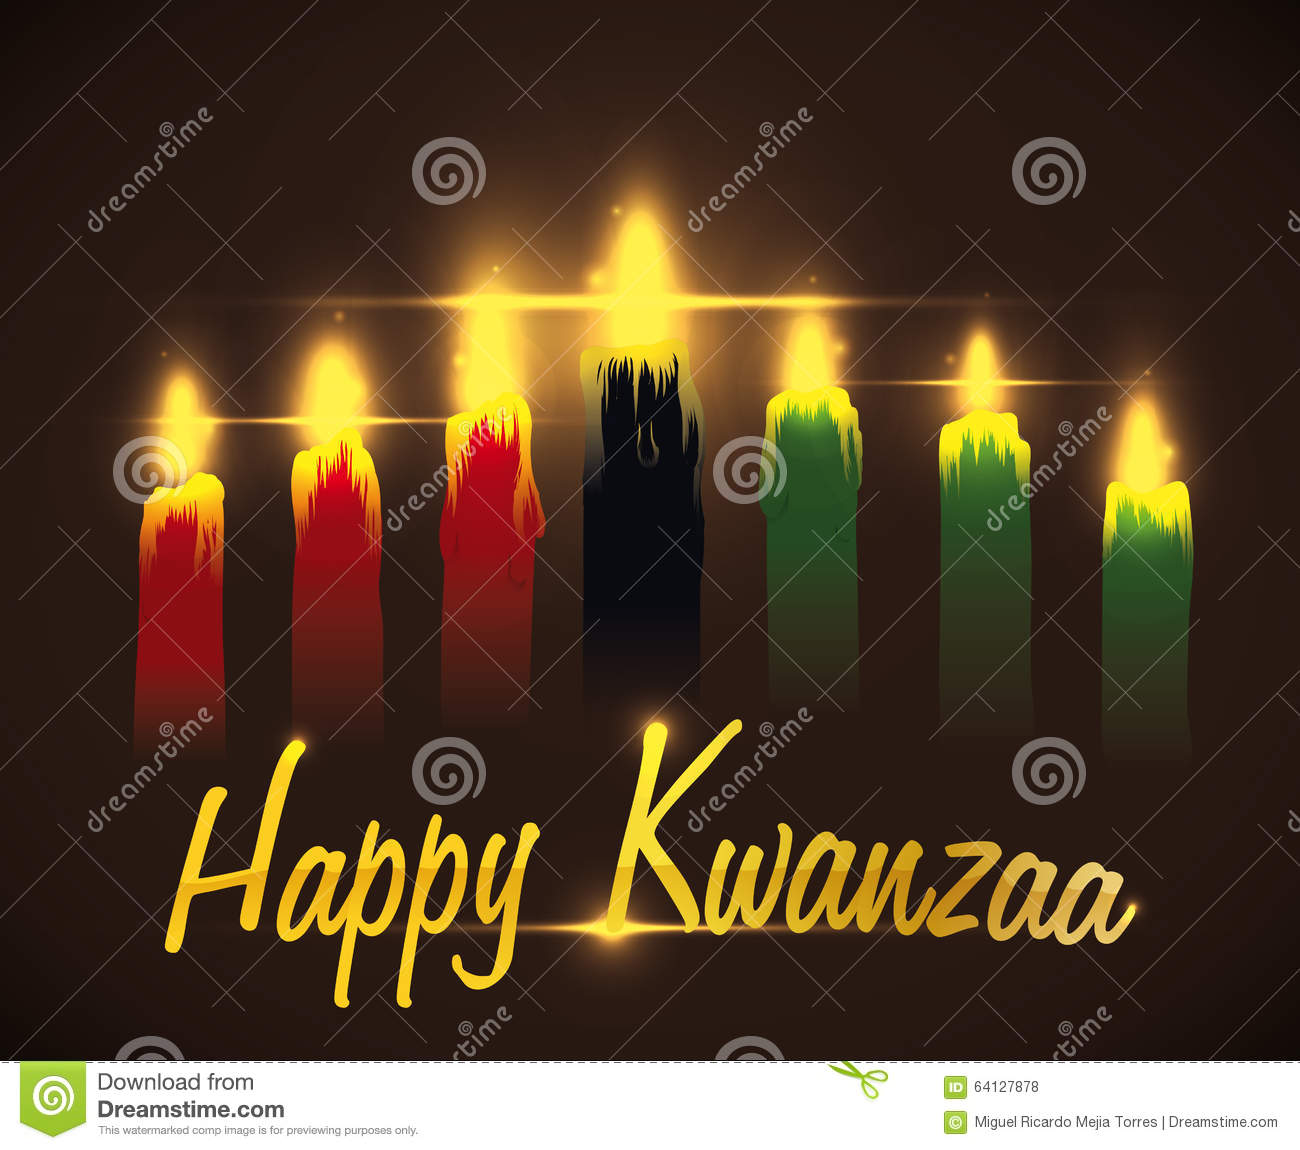 Greeting kwanzaa message with traditional candles vector greeting kwanzaa message with traditional candles vector illustration m4hsunfo